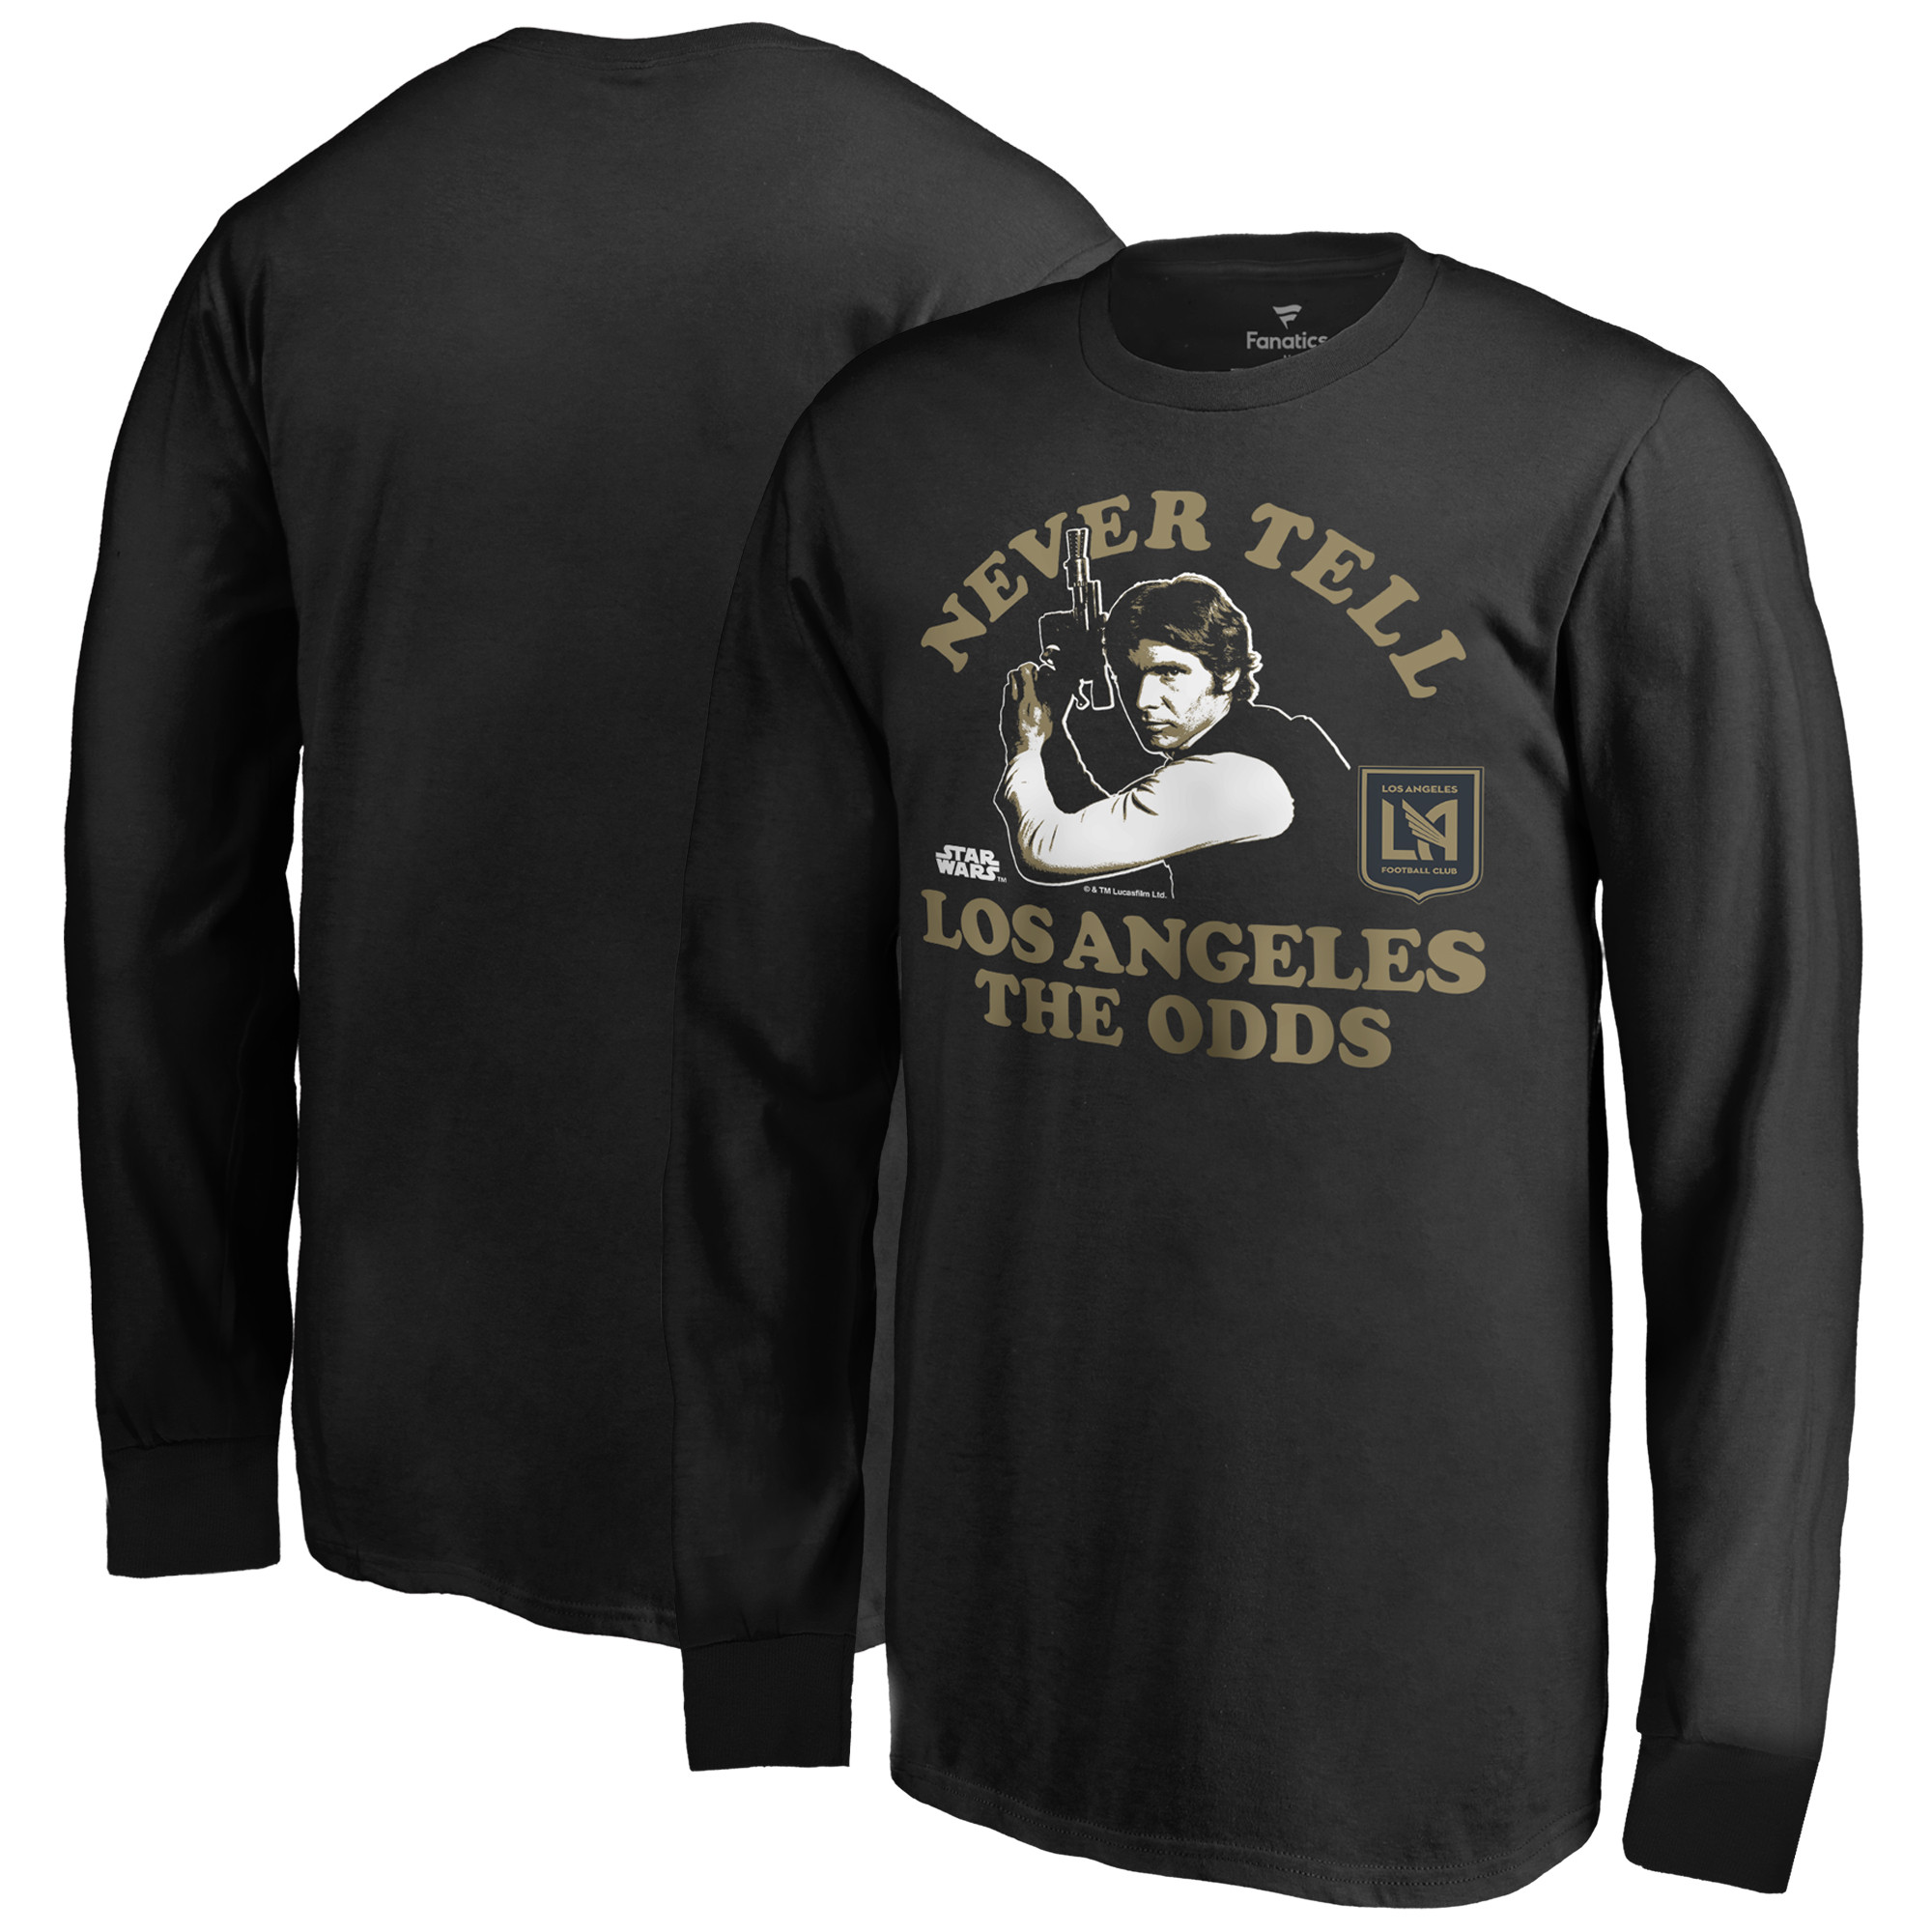 LAFC Fanatics Branded Youth Star Wars Never Tell the Odds Long Sleeve T-Shirt - Black